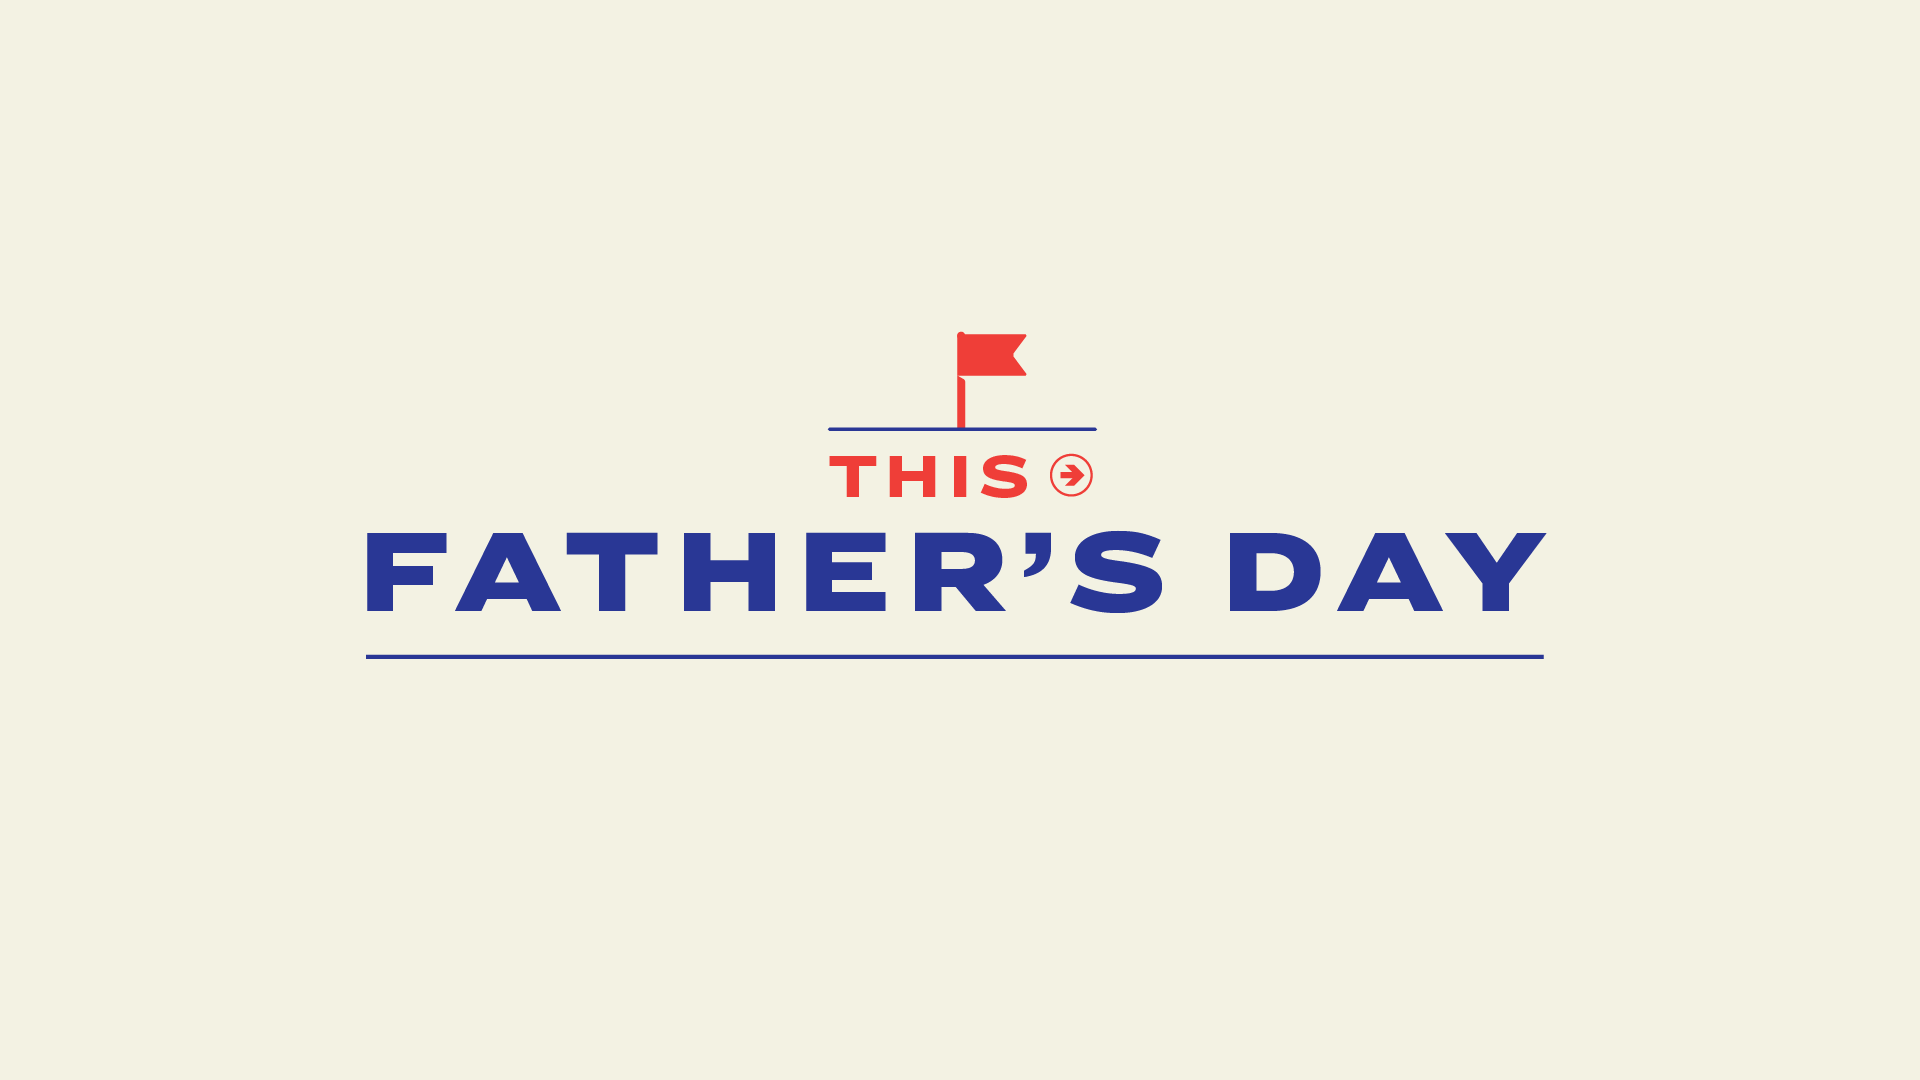 ACA-190530_FATHERS_DAY_BOARDS_cv_v05-01.png